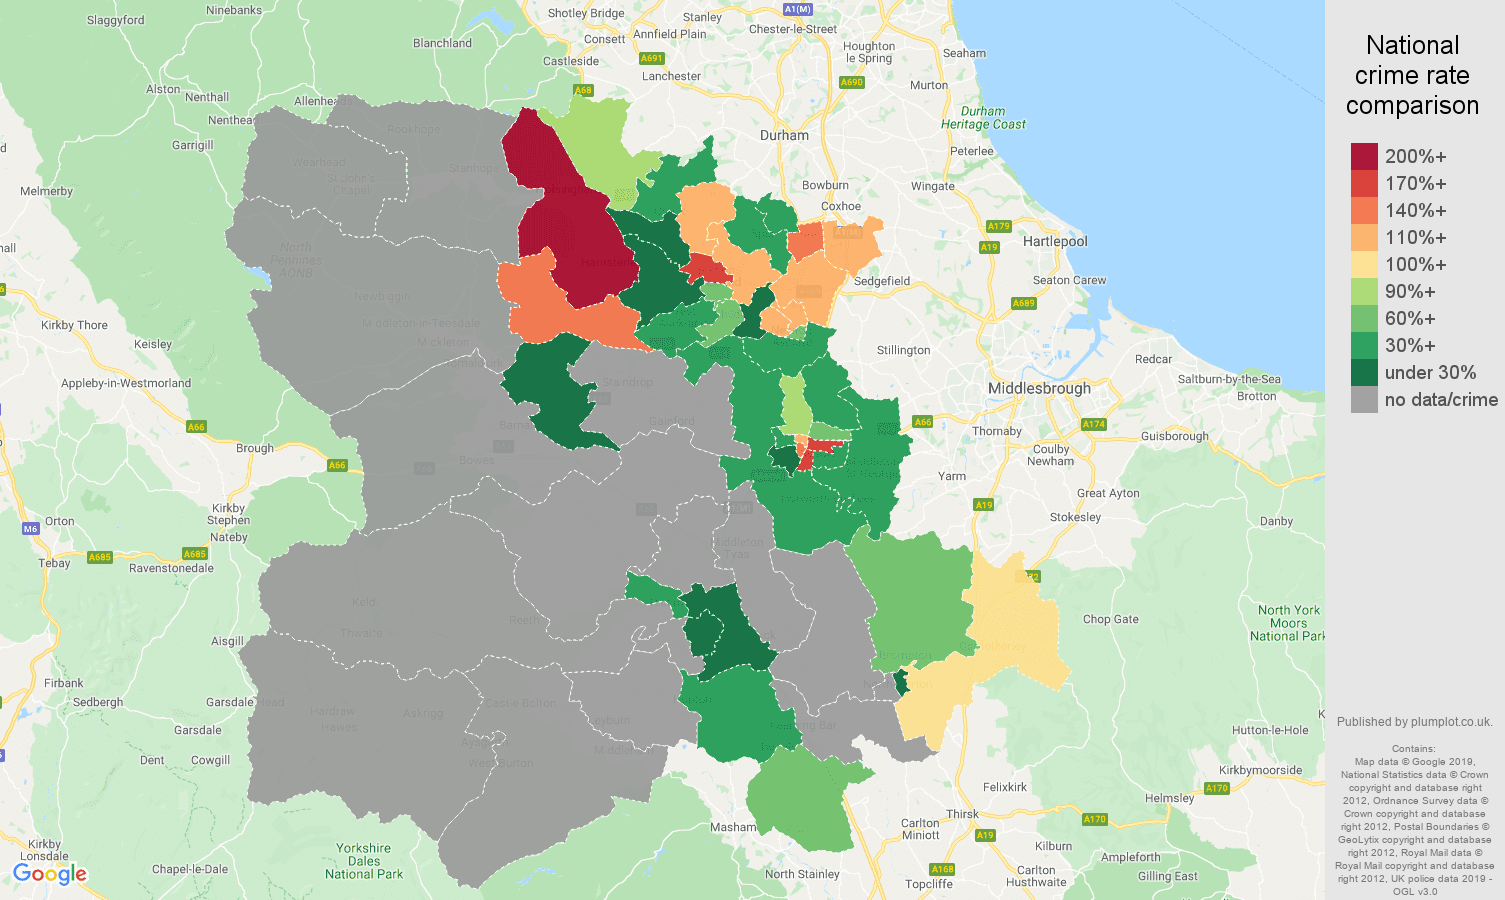 Darlington possession of weapons crime rate comparison map